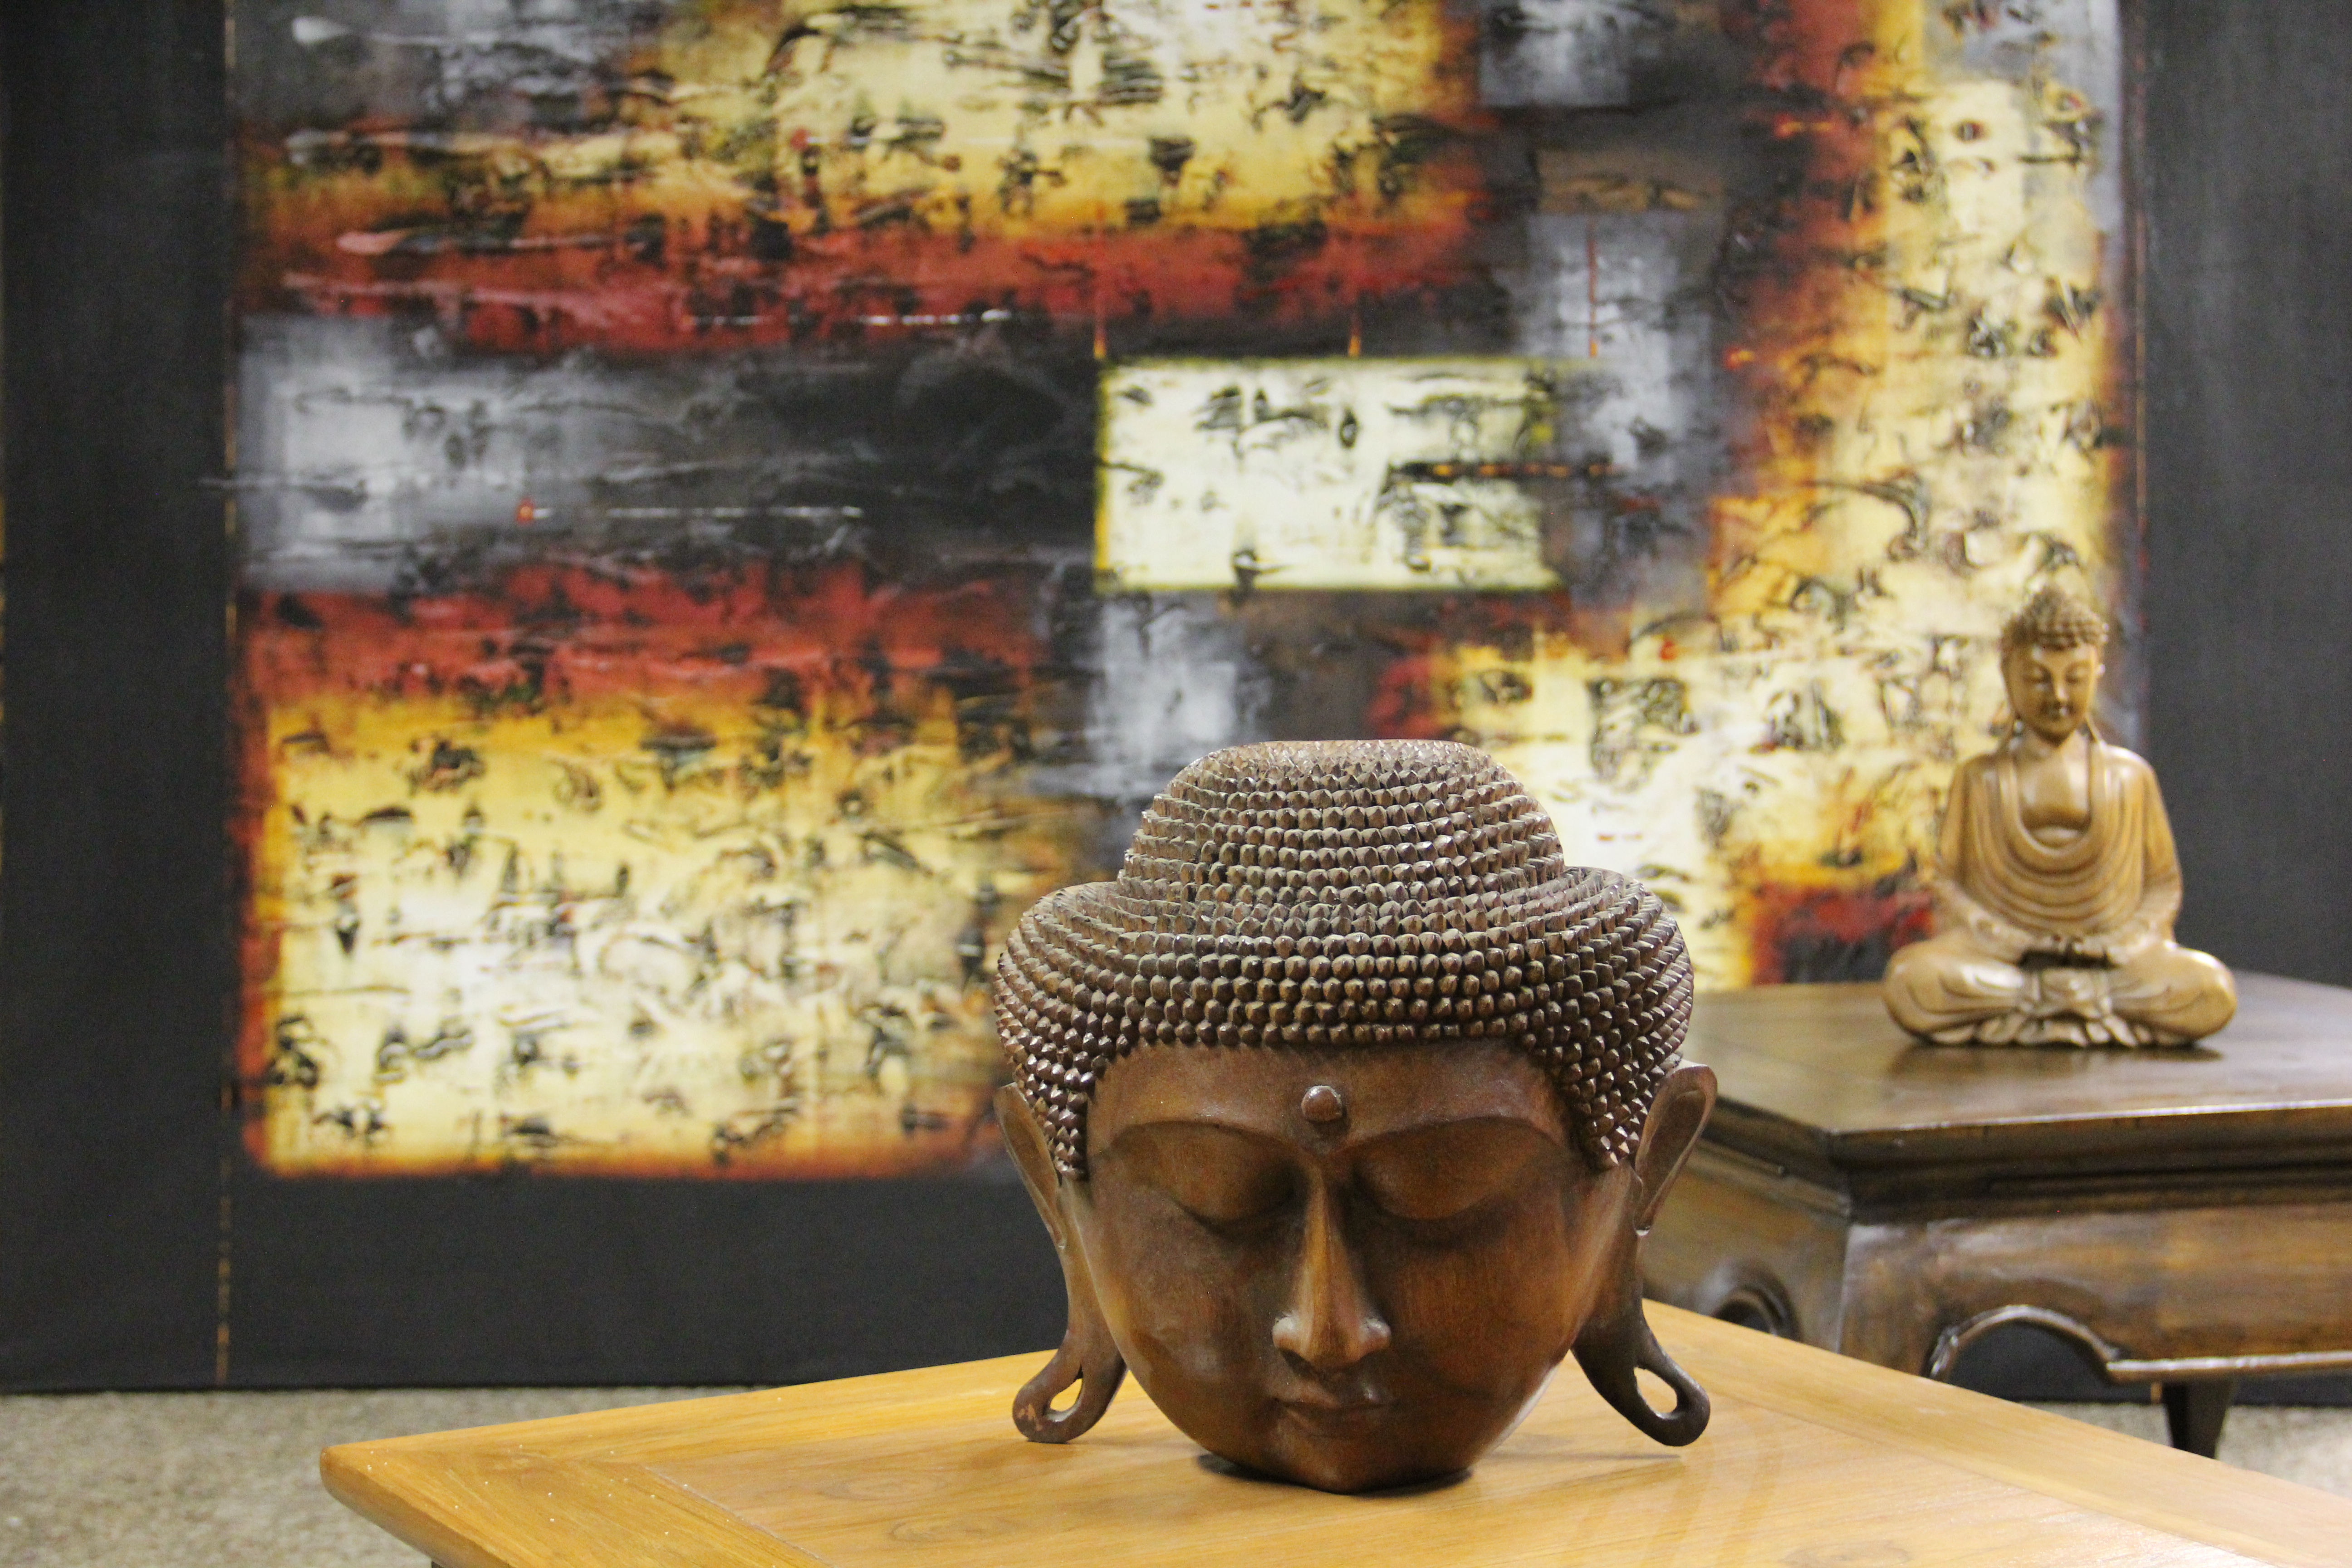 Solid Buddha Art Pieces